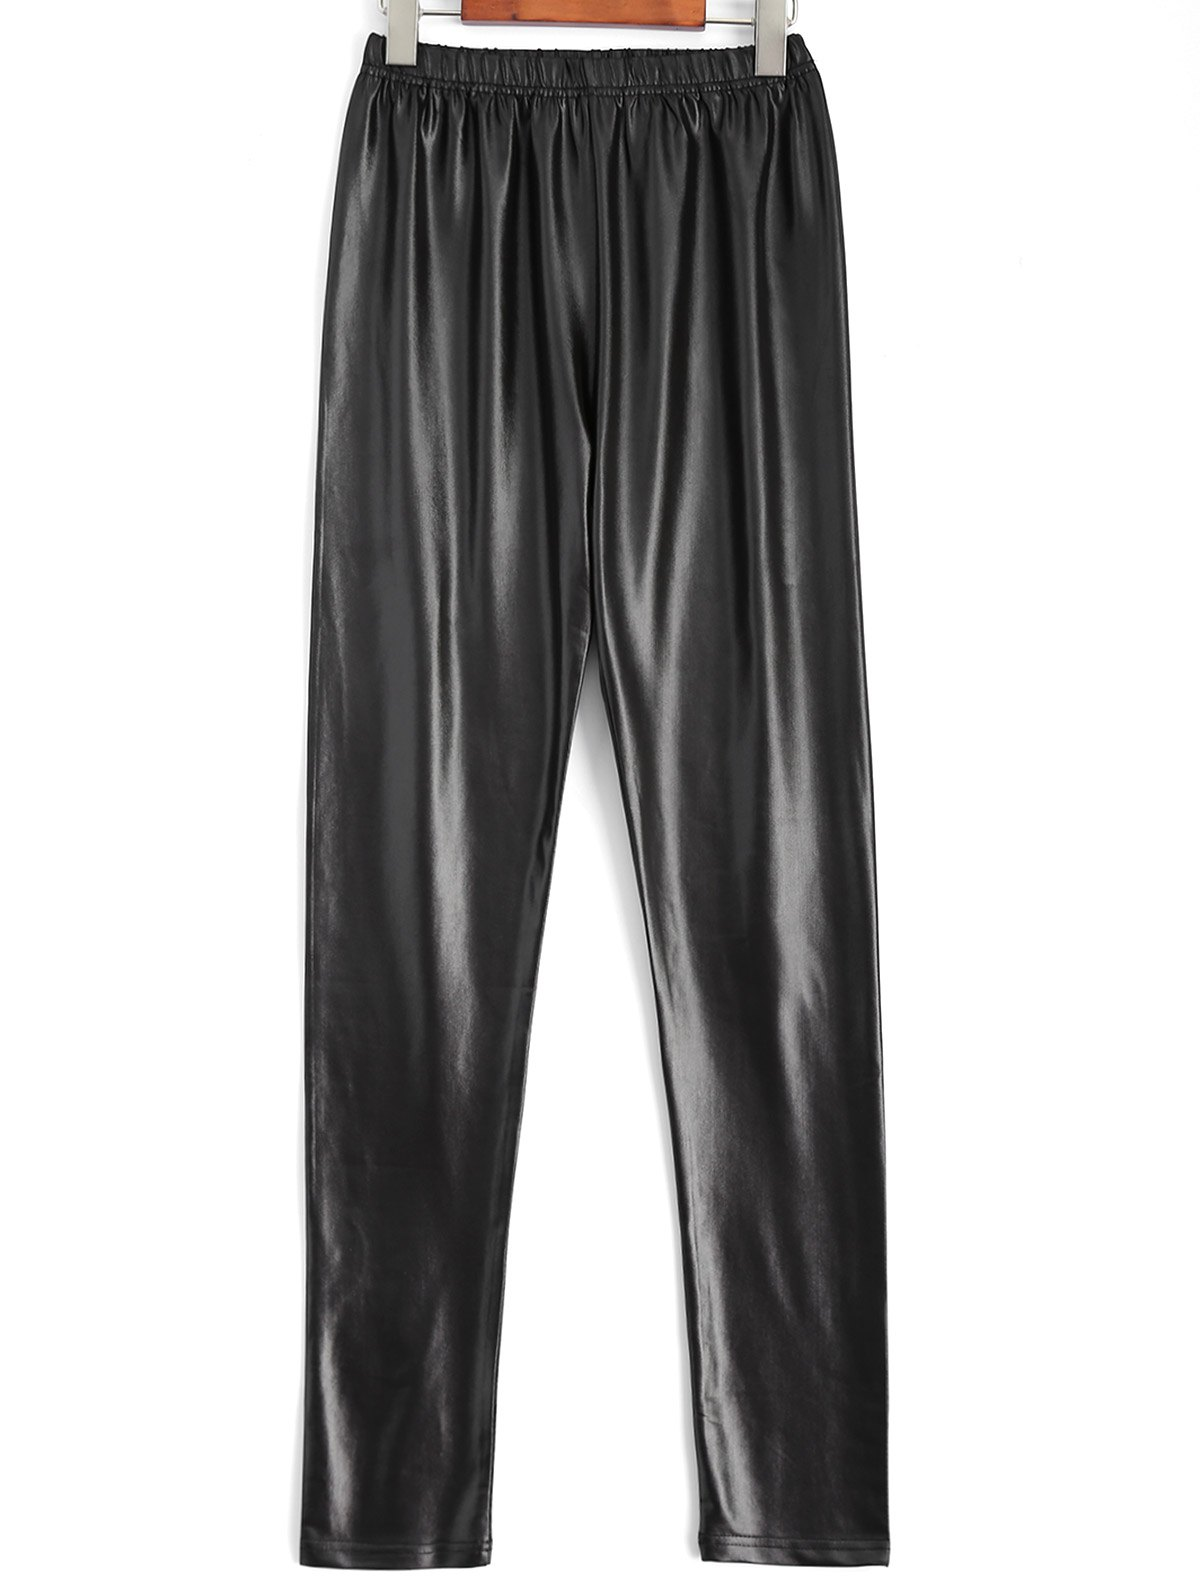 Plus Size Faux Leather Pencil Pants - BLACK XL